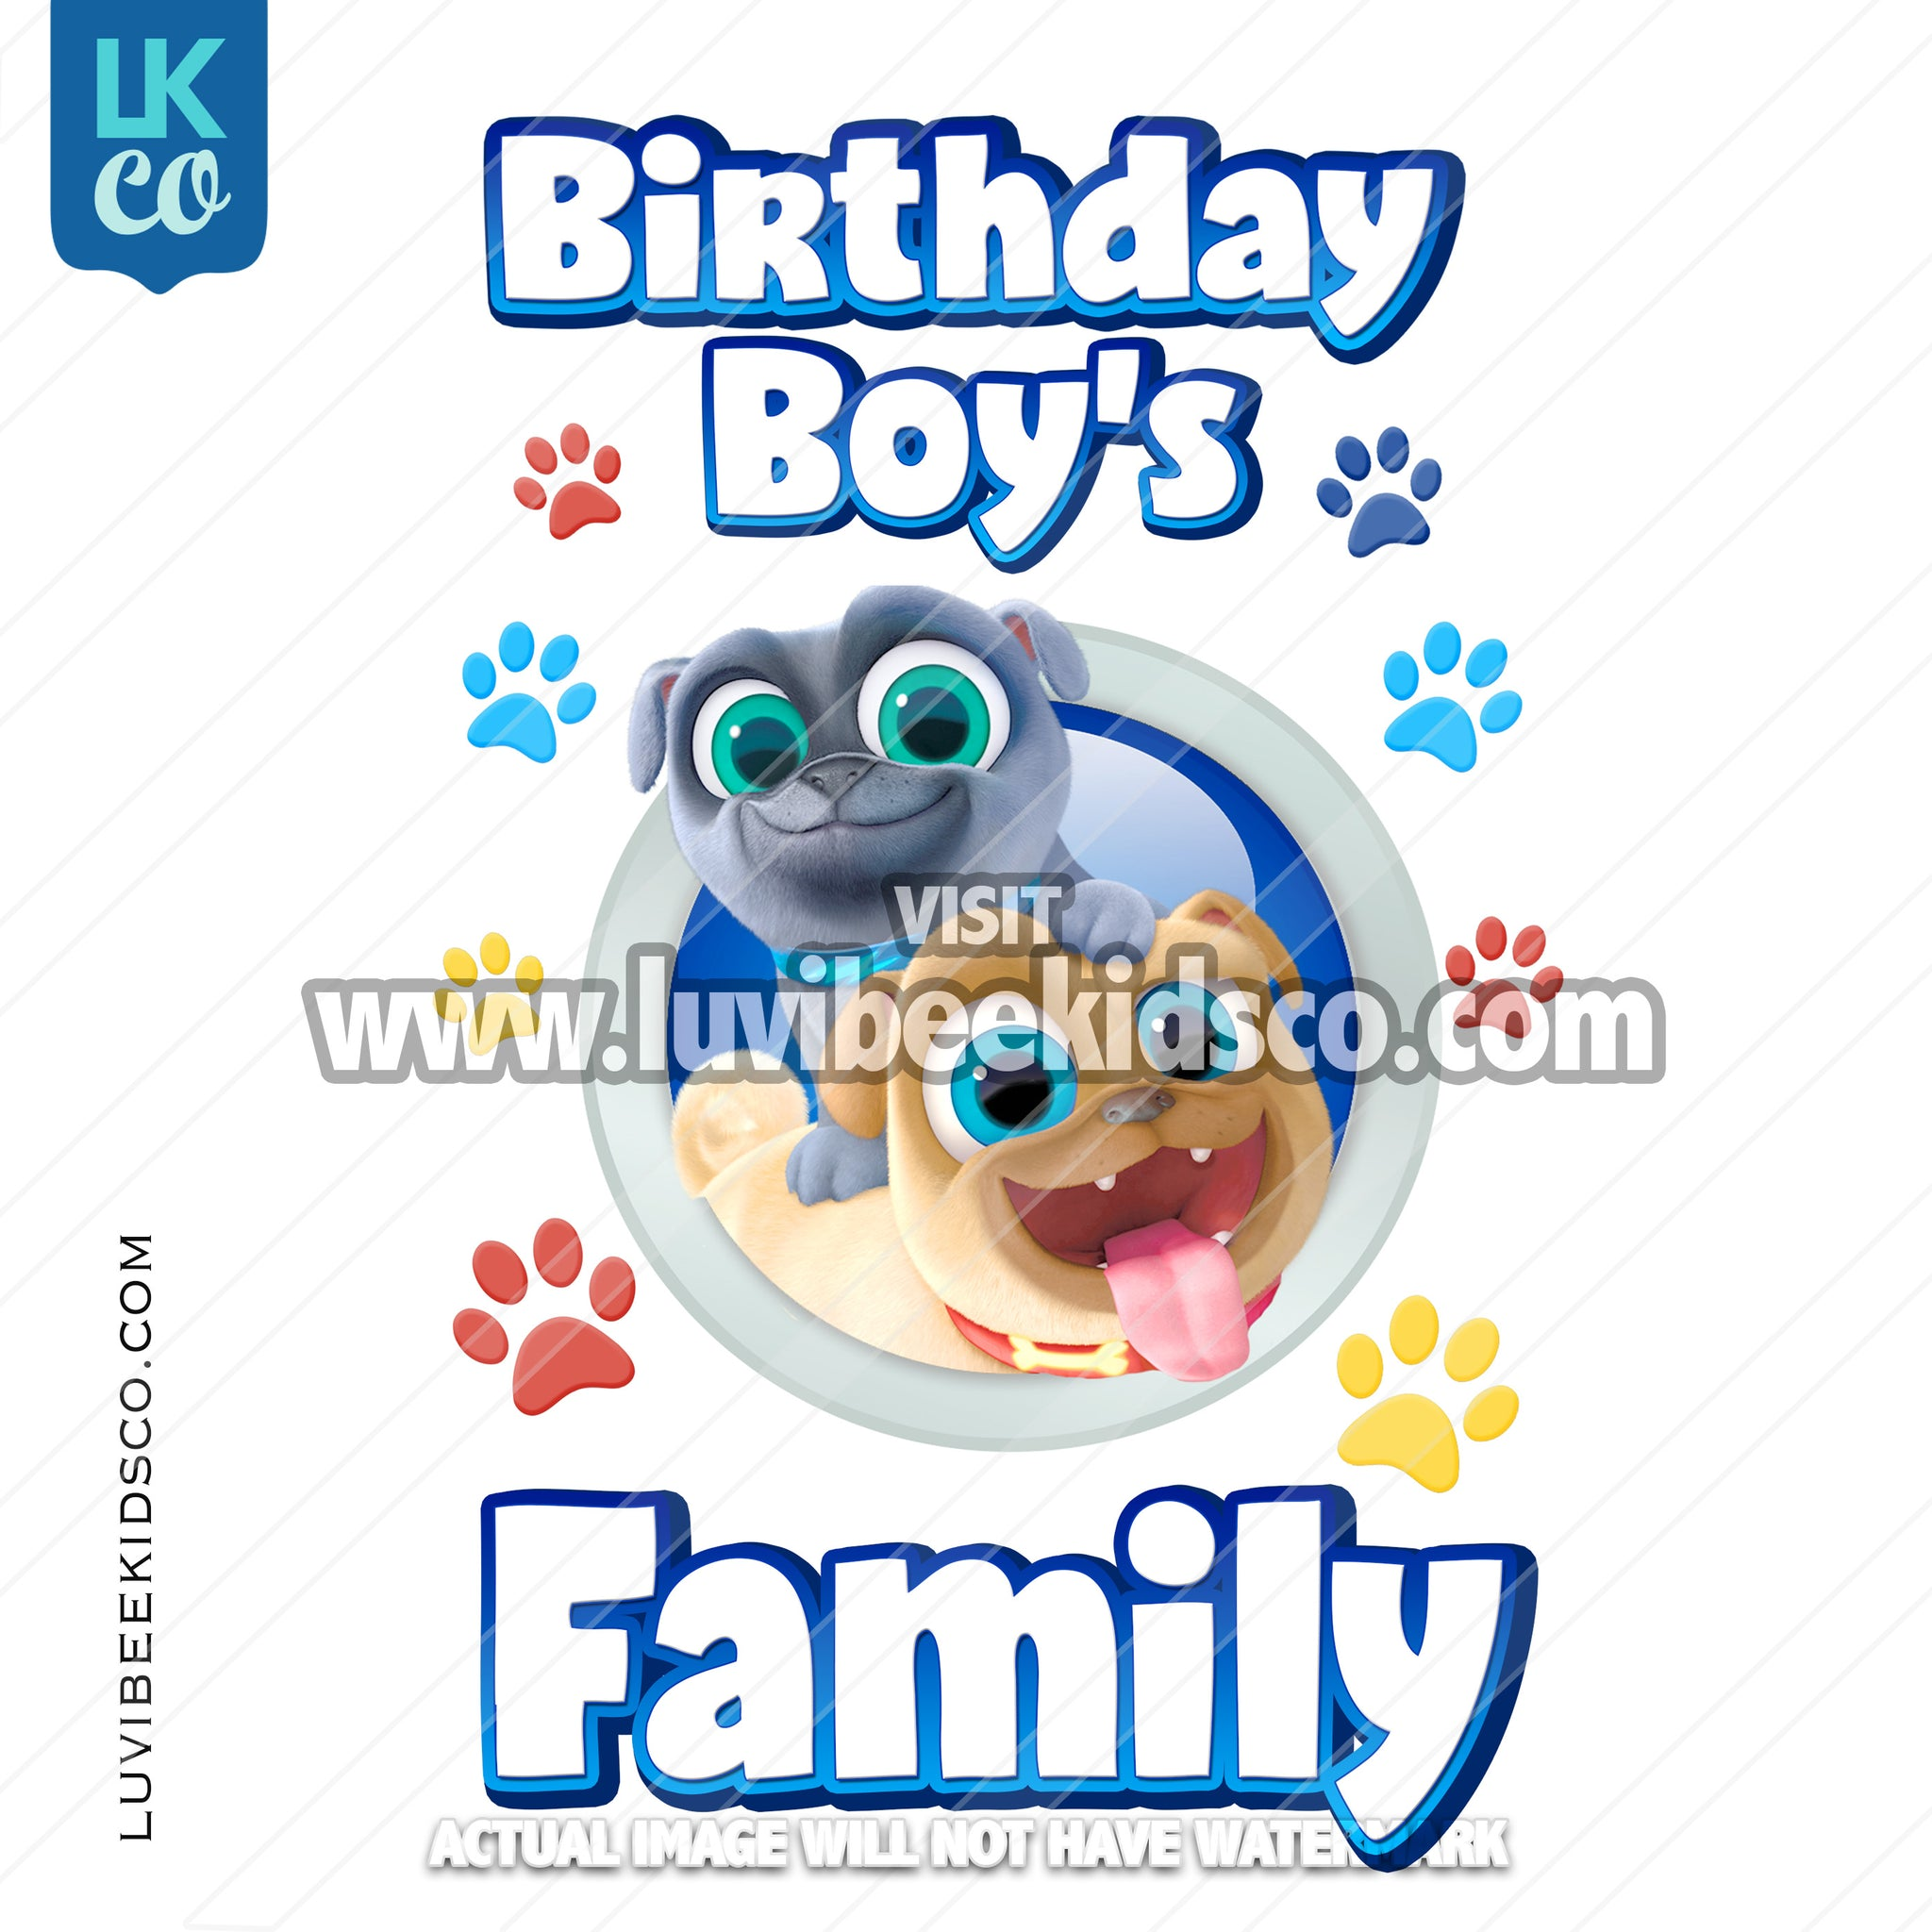 Puppy Dog Pals Iron On Transfer | Add Family Members - Style 2 - Boy or Girl - LuvibeeKidsCo